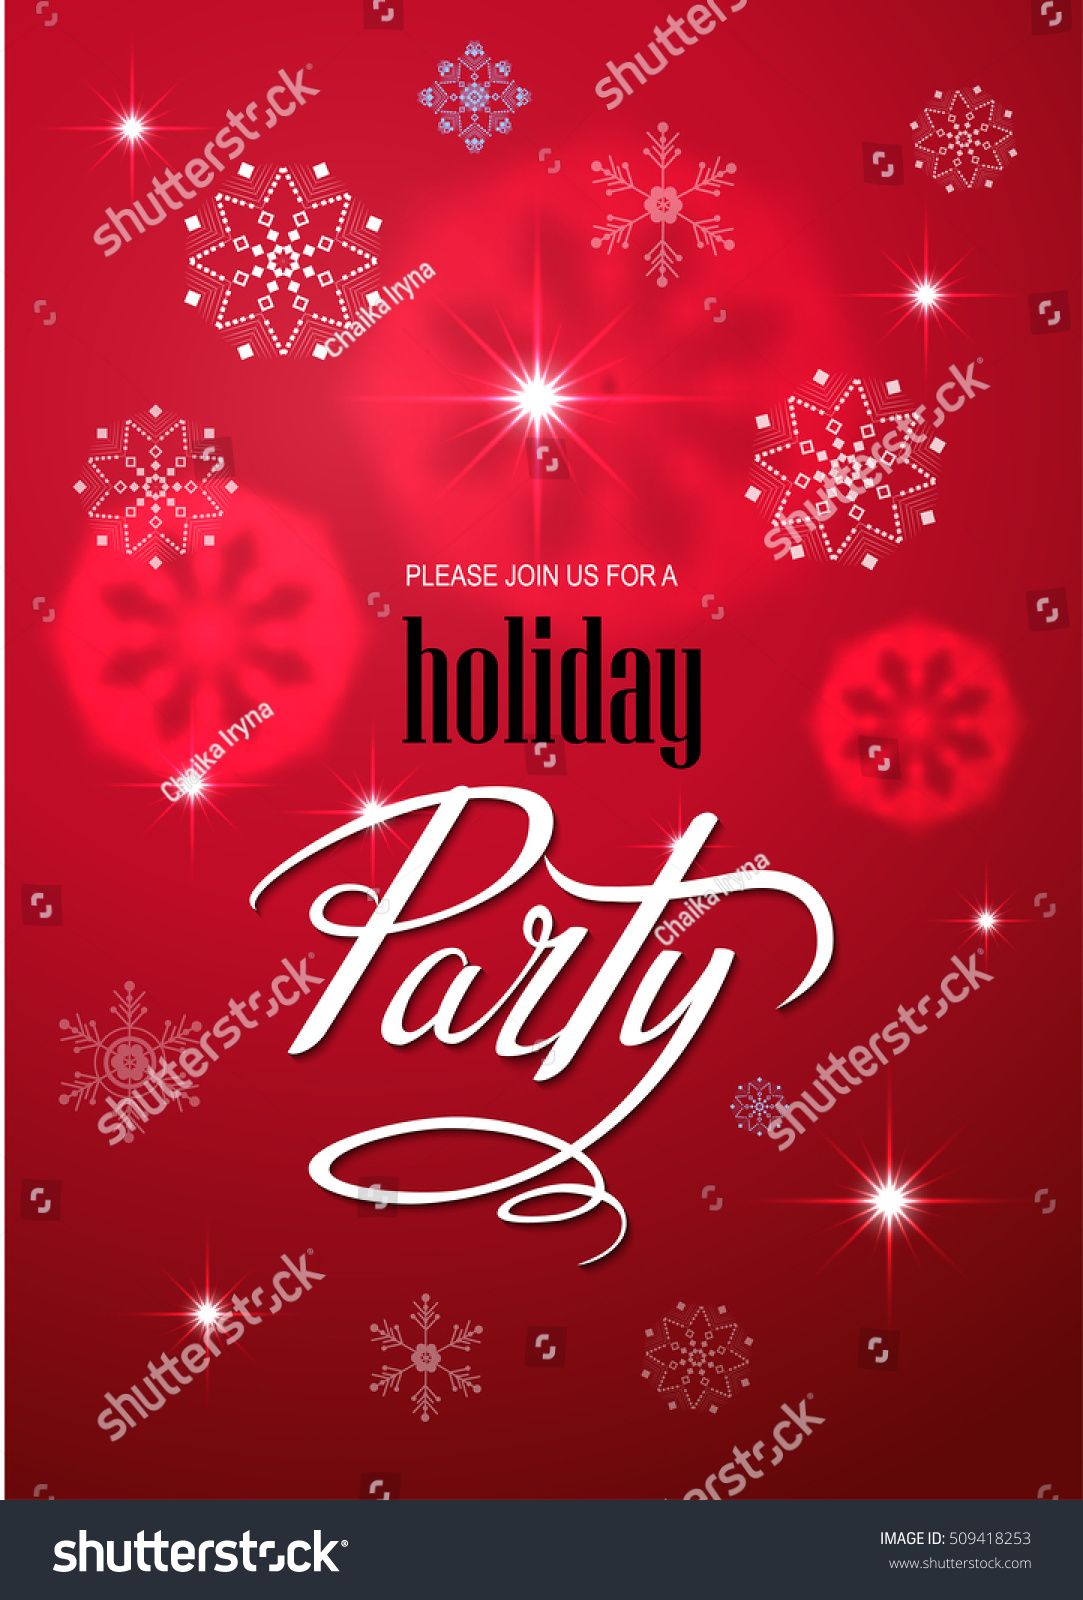 merry christmas party invitation and happy new year party invitation card christmas party poster holiday design